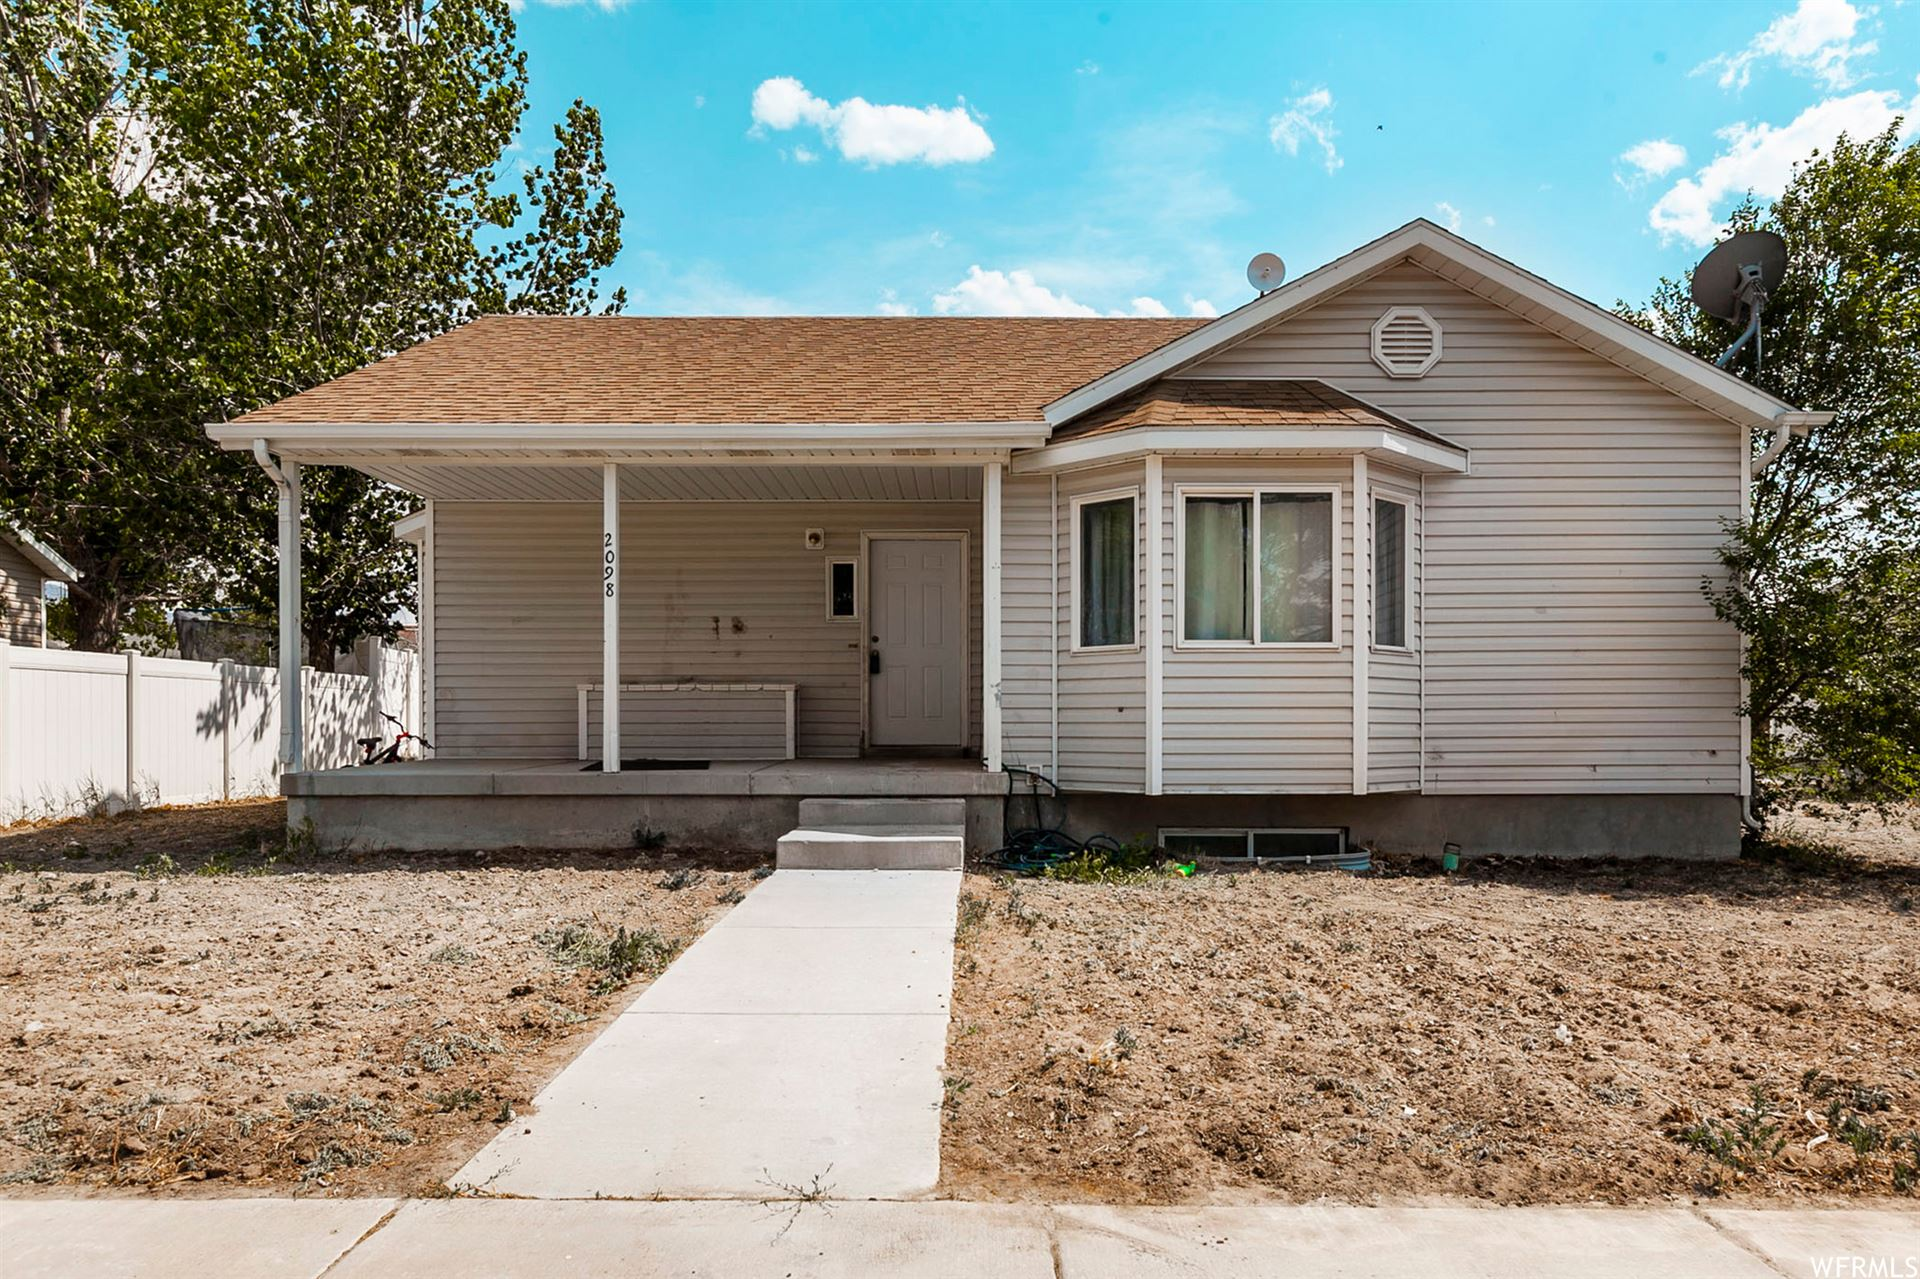 Photo of 2098 E WEEPING WILLOW WAY N, Eagle Mountain, UT 84005 (MLS # 1749308)